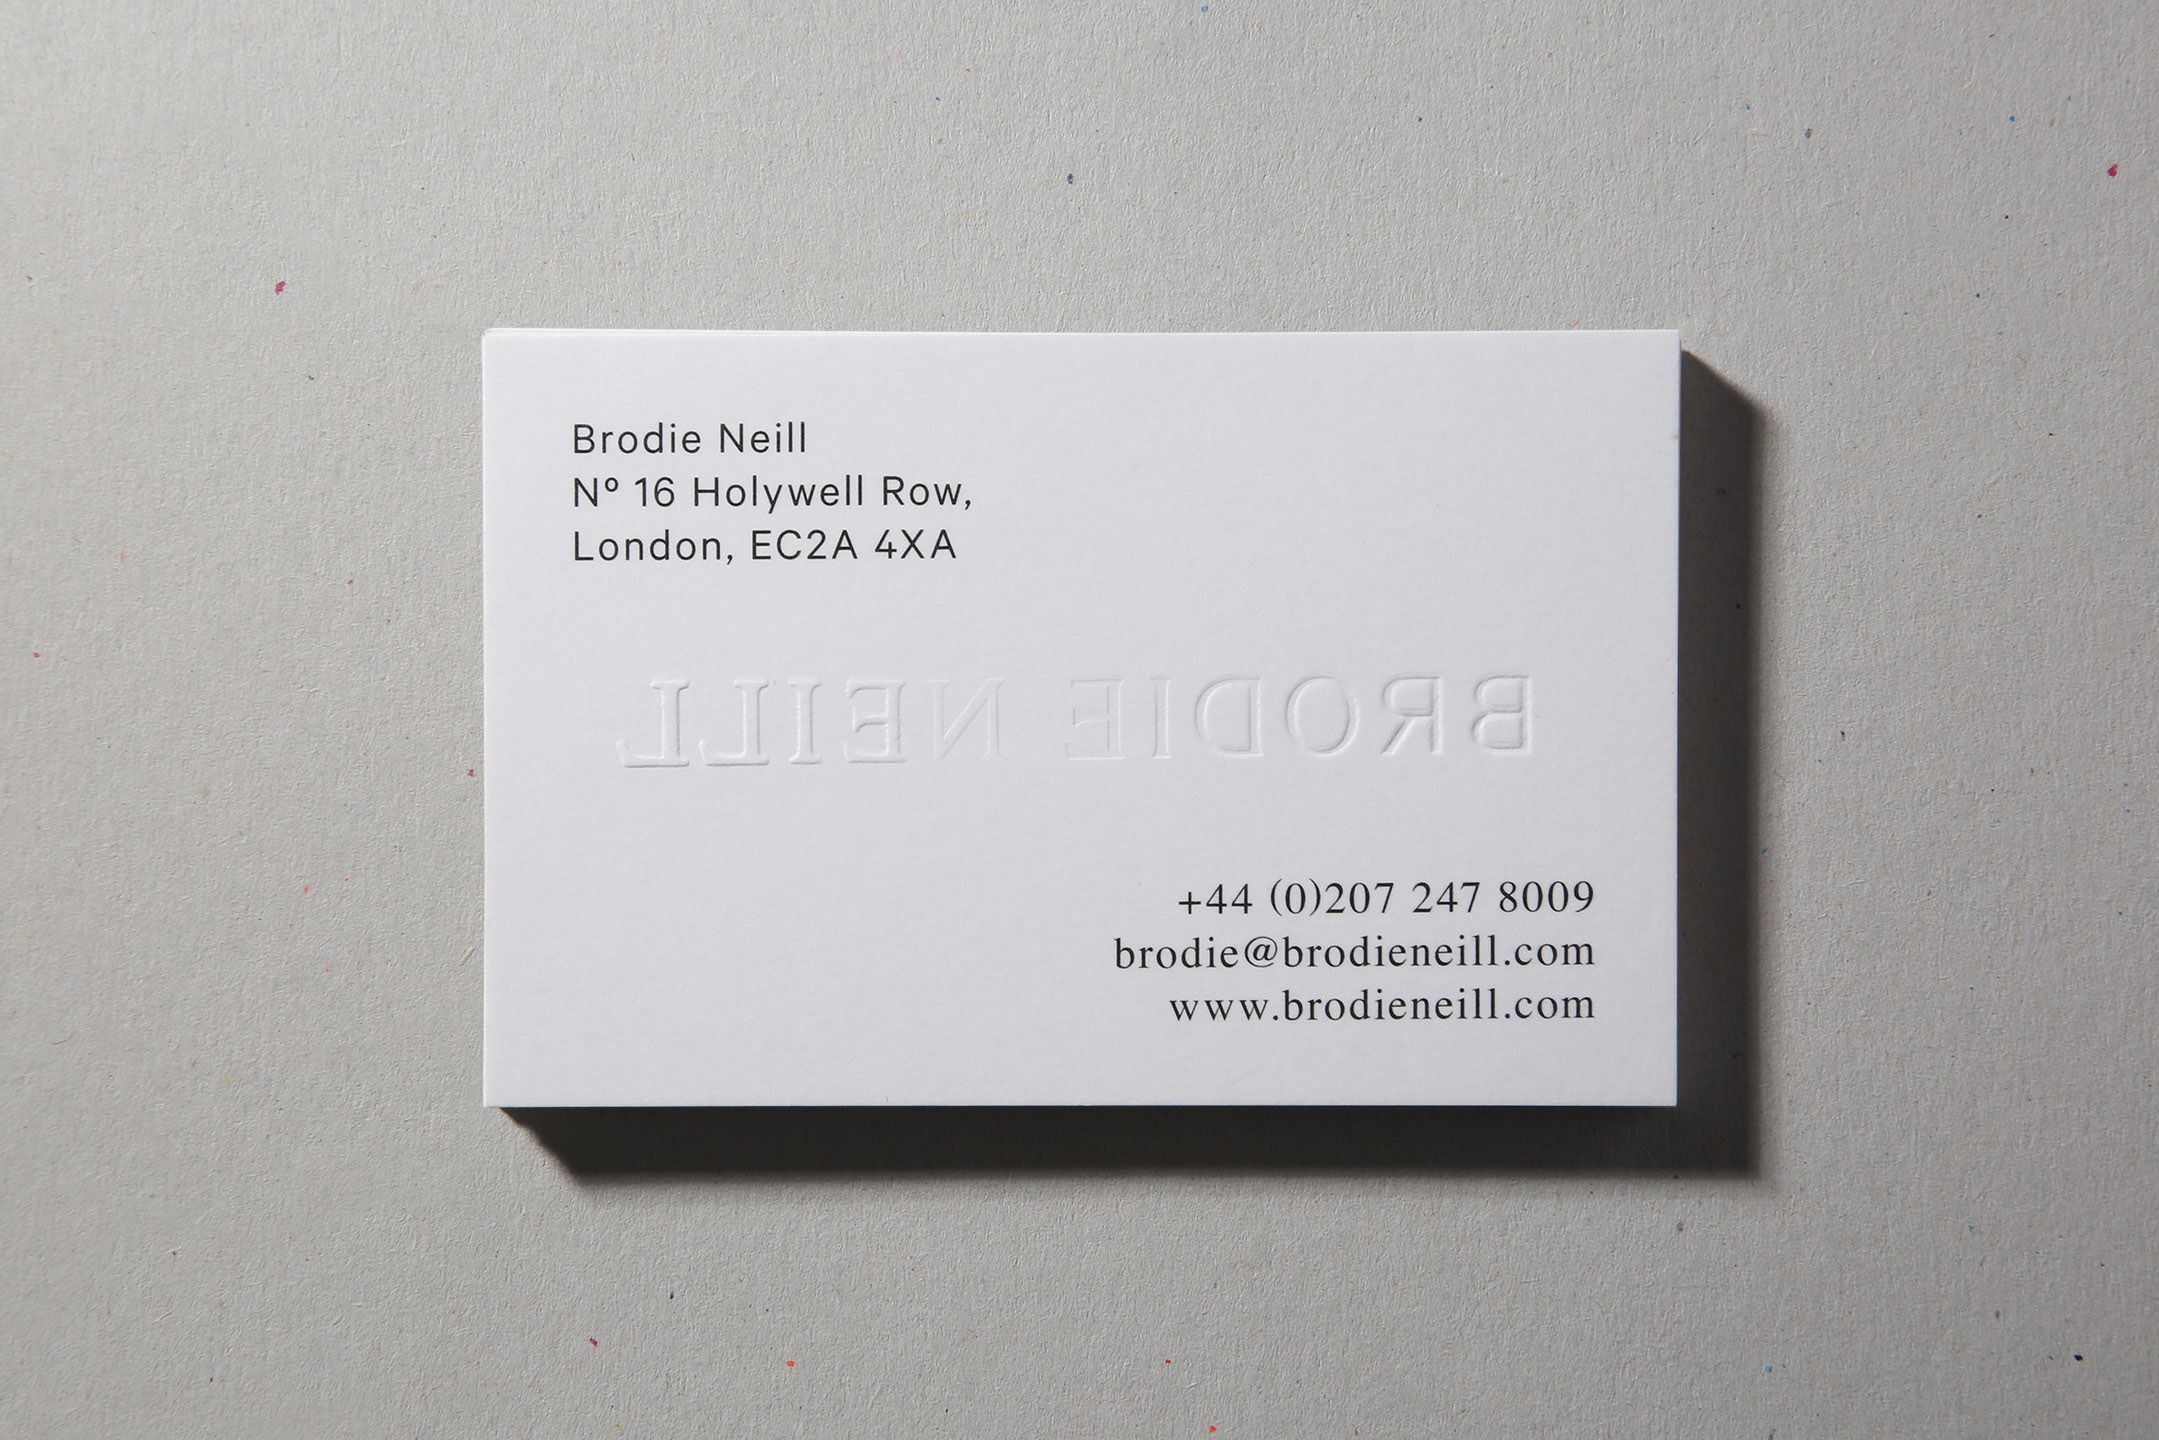 Bro Neill visual identity and blind emboss business card by